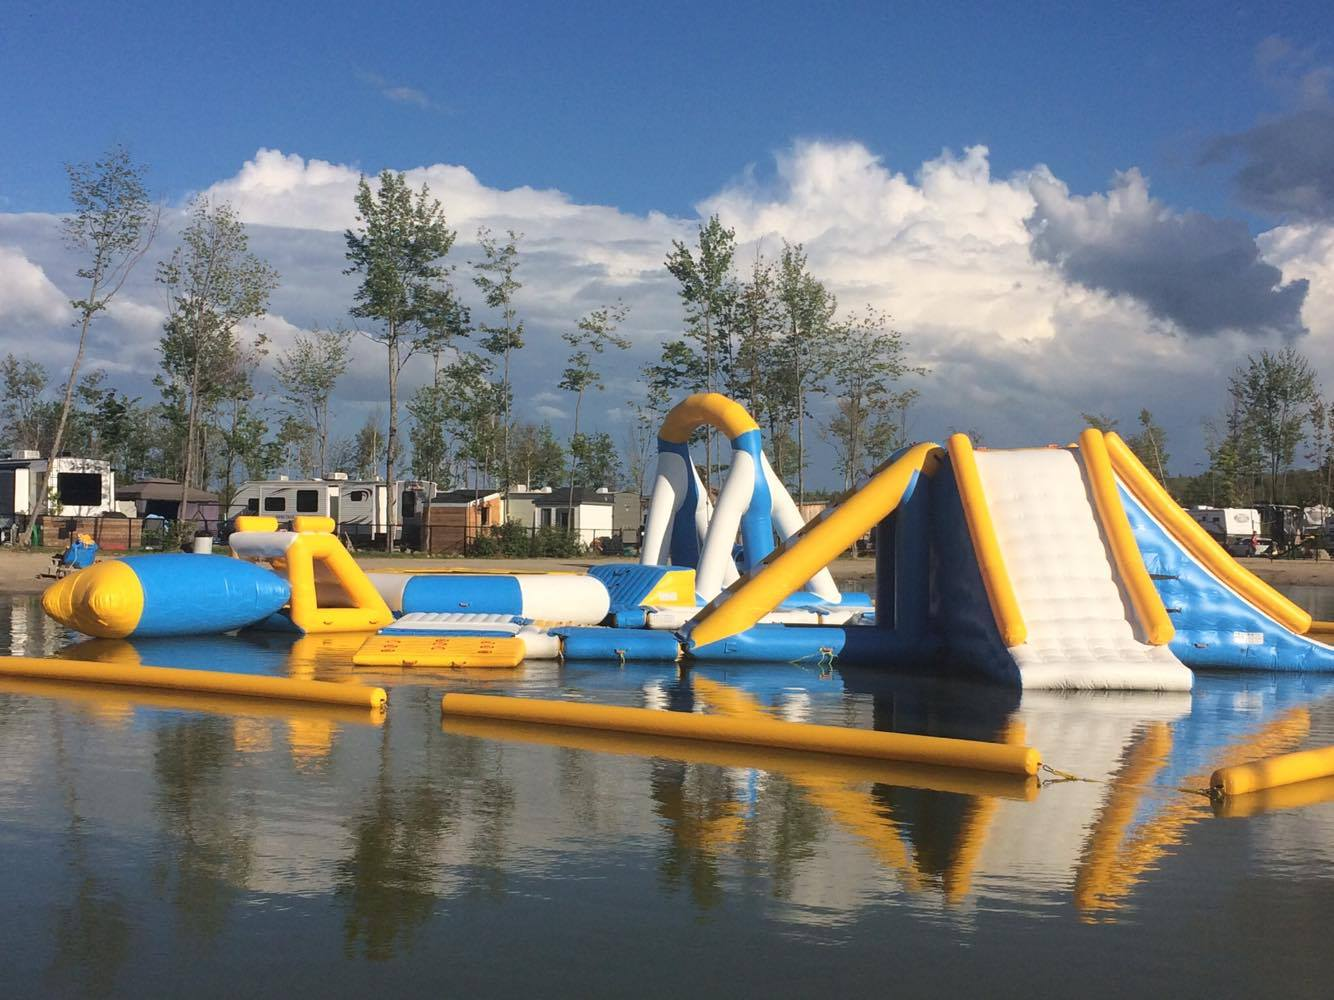 http://www.familizoo.com/ENG/wp-content/uploads/2019/01/parcours-gonflable-lac-complexe-atlantide-3-2.jpg